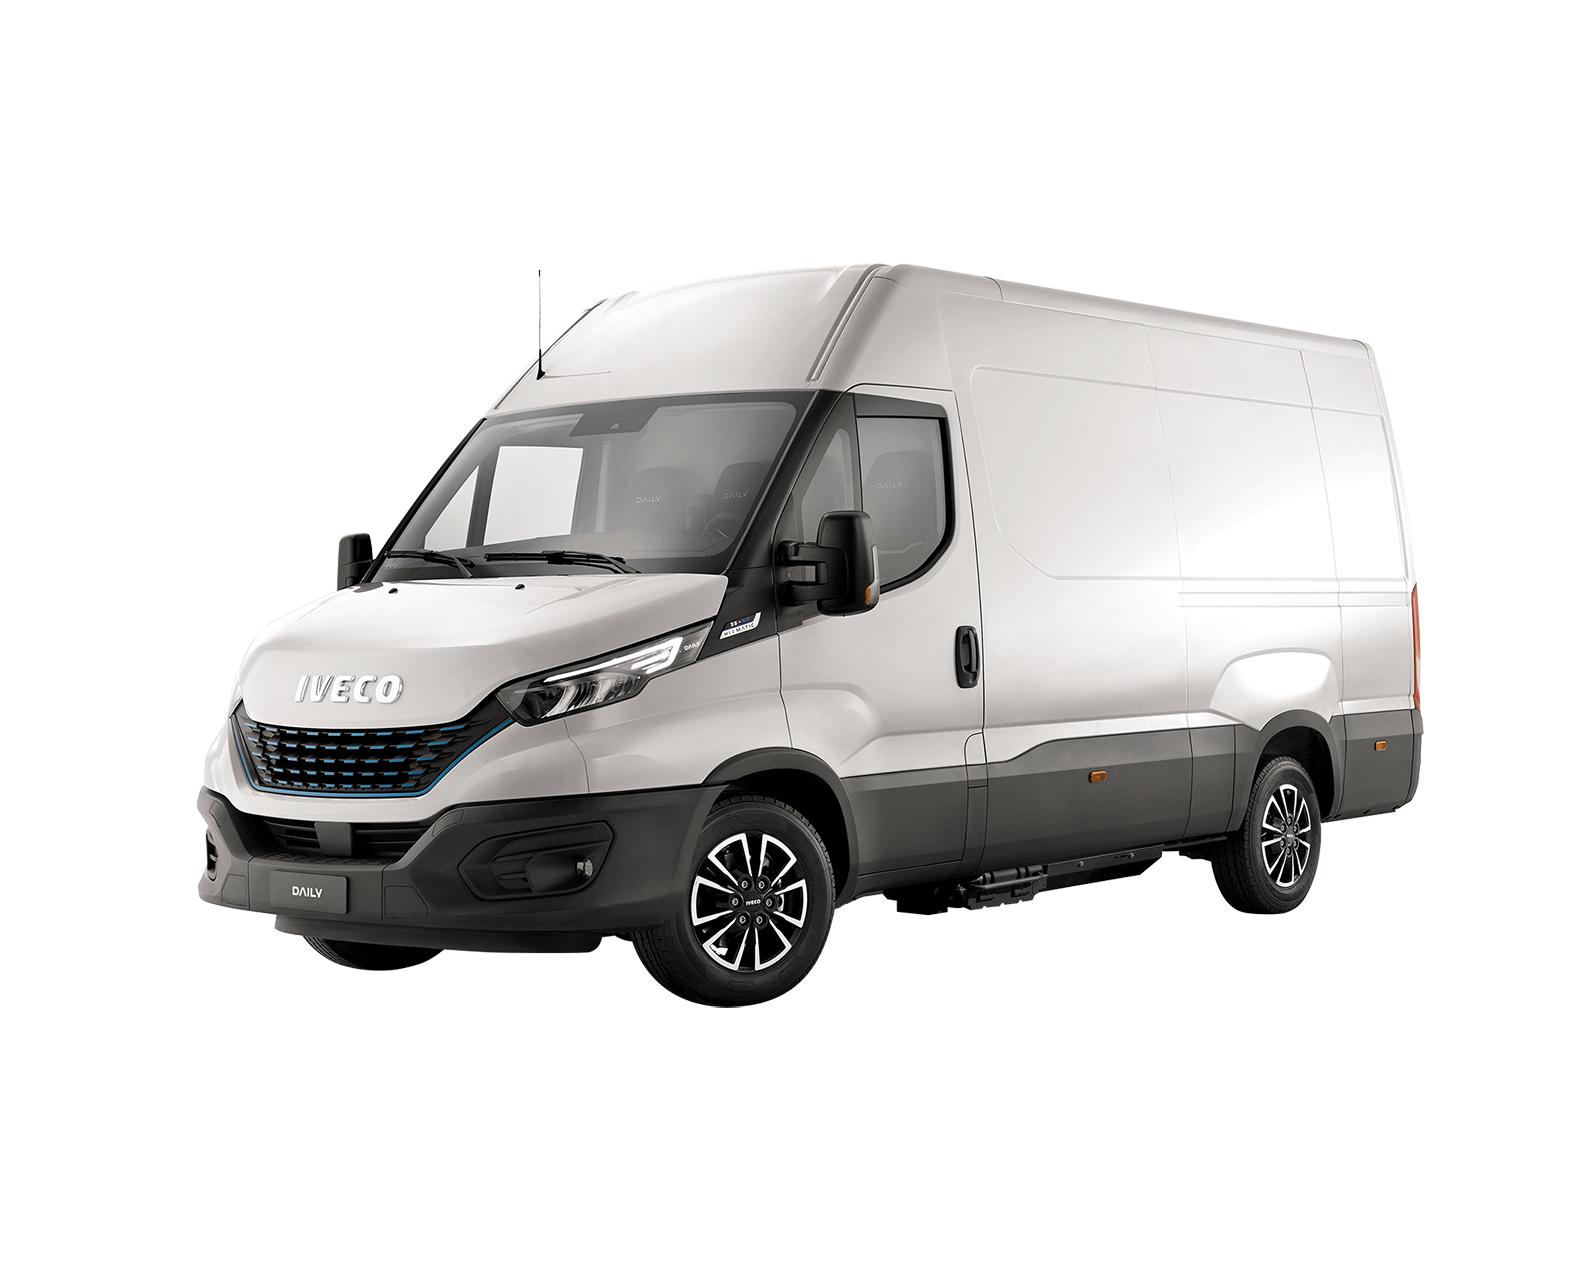 https://cogcms.co.uk/media/15700/iveco-daily-cutout.png